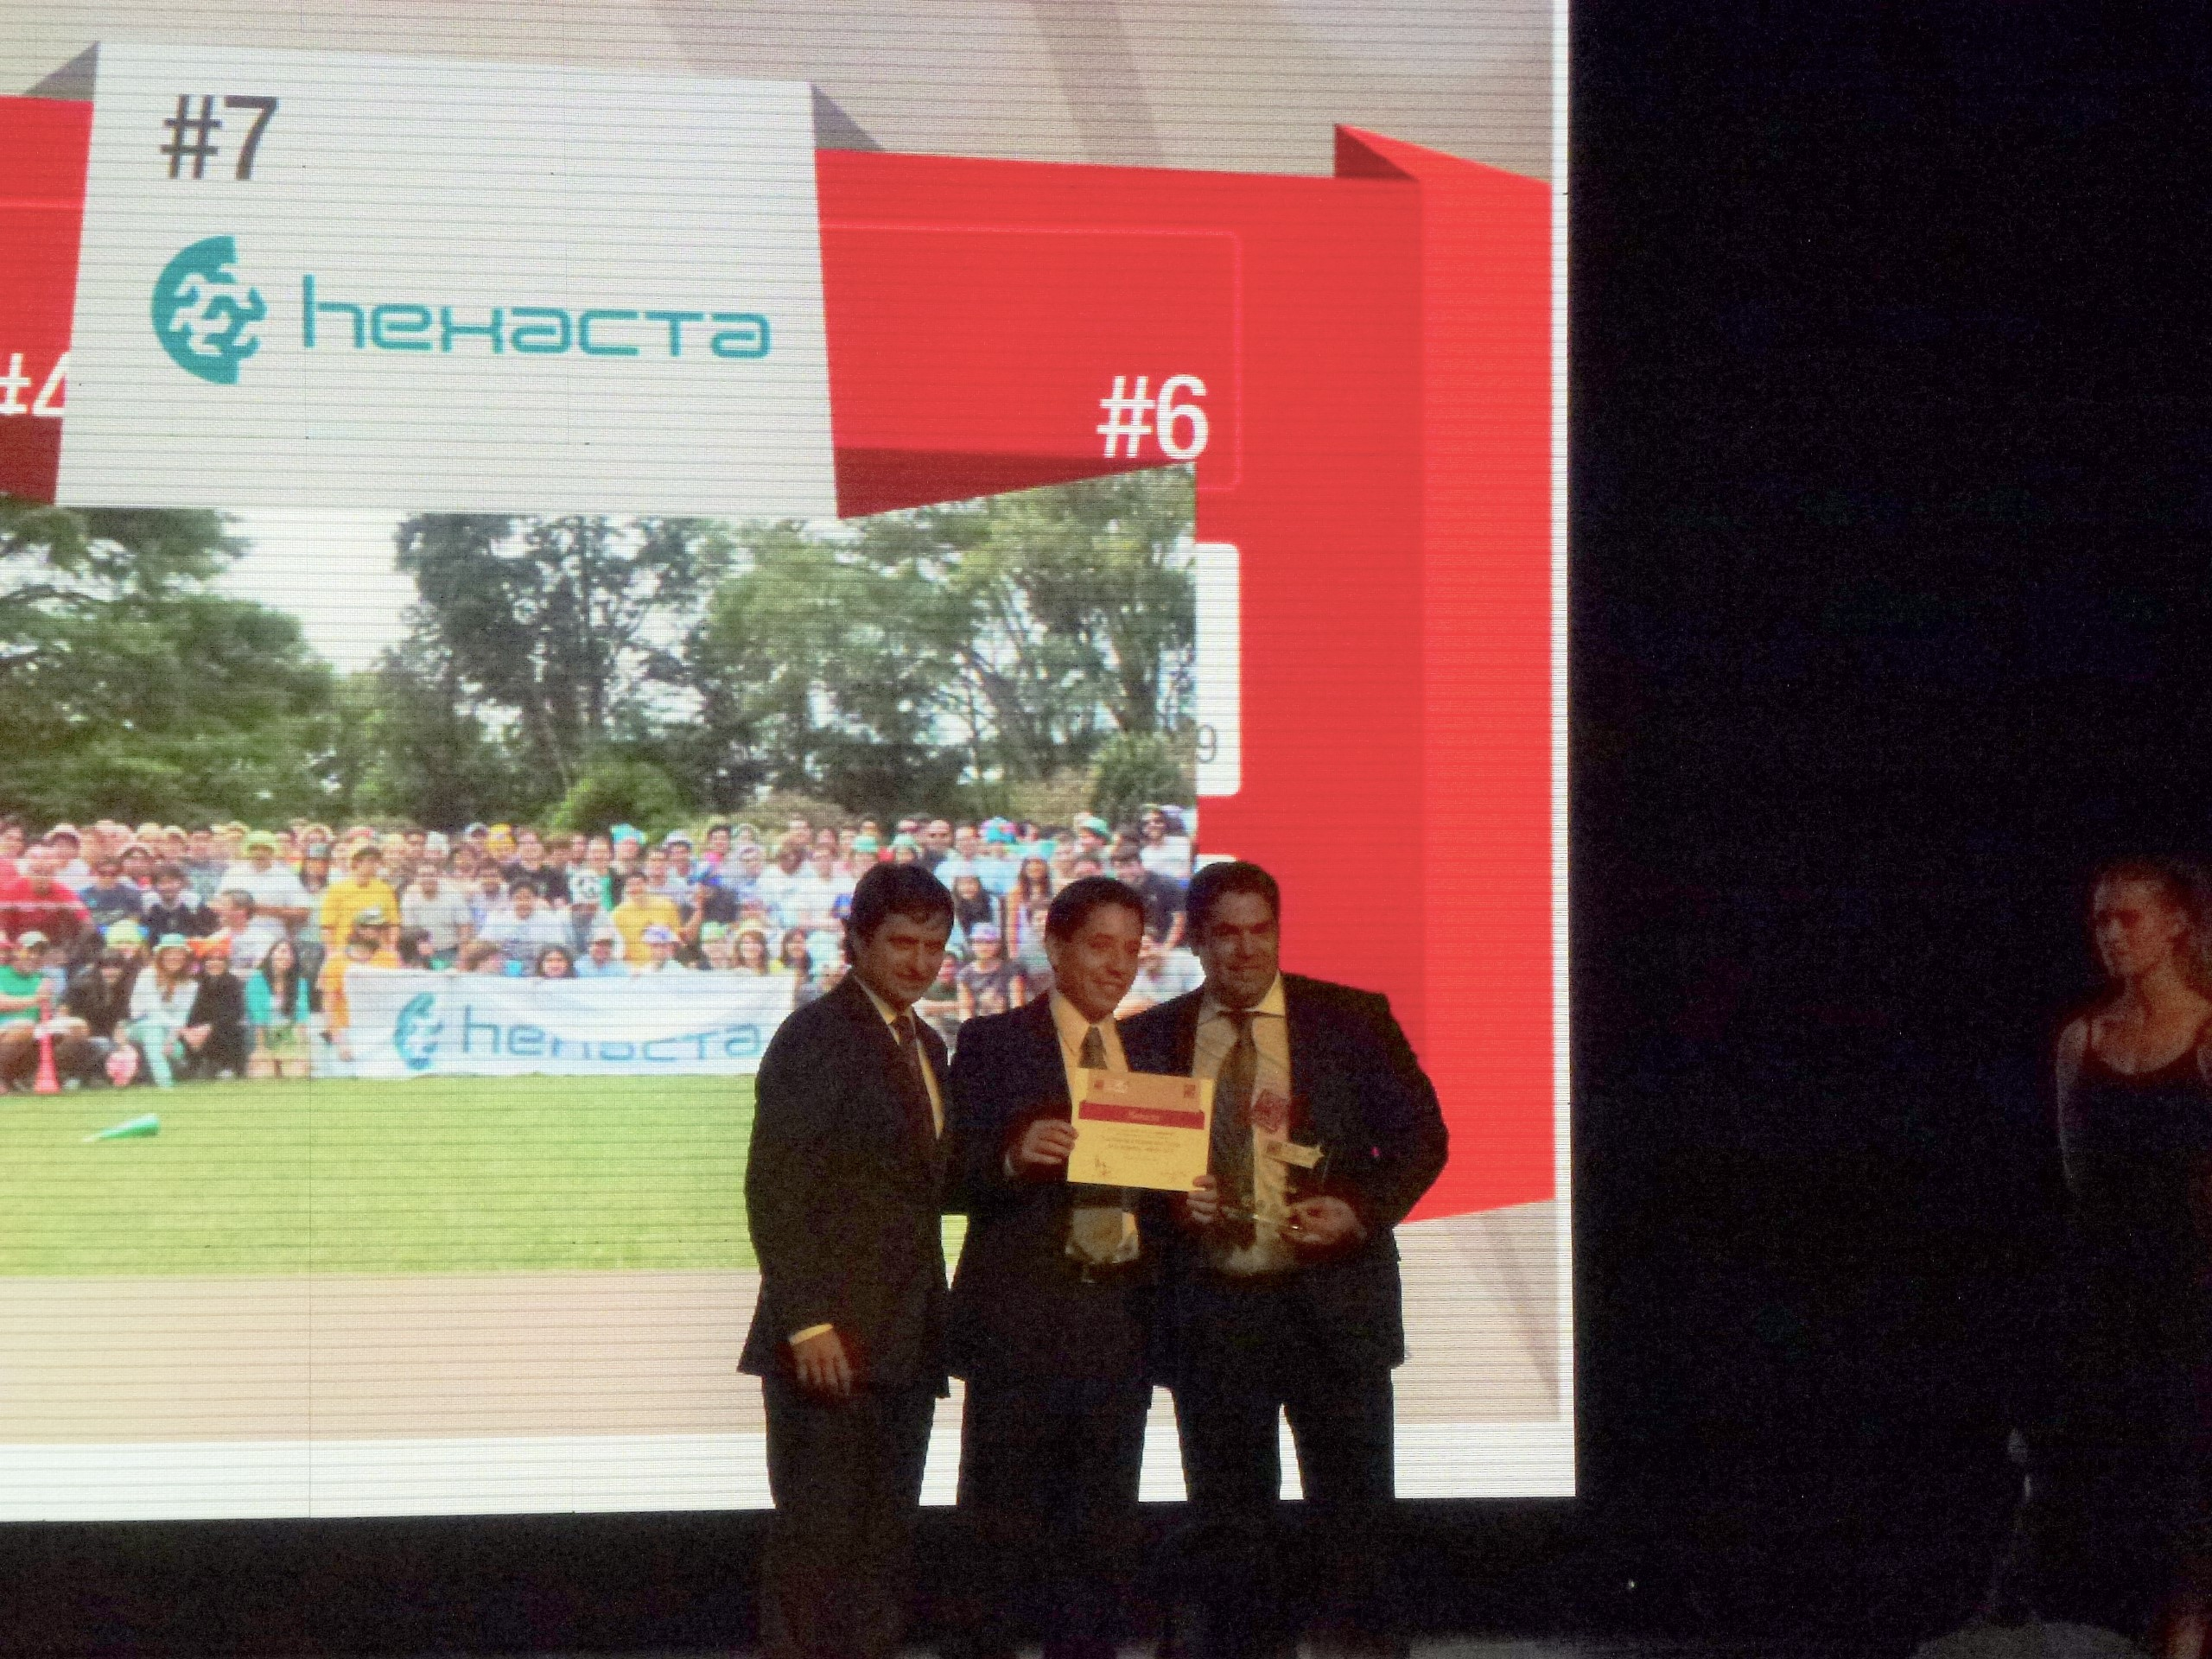 Hexacta among the 10 best companies to work in Argentina